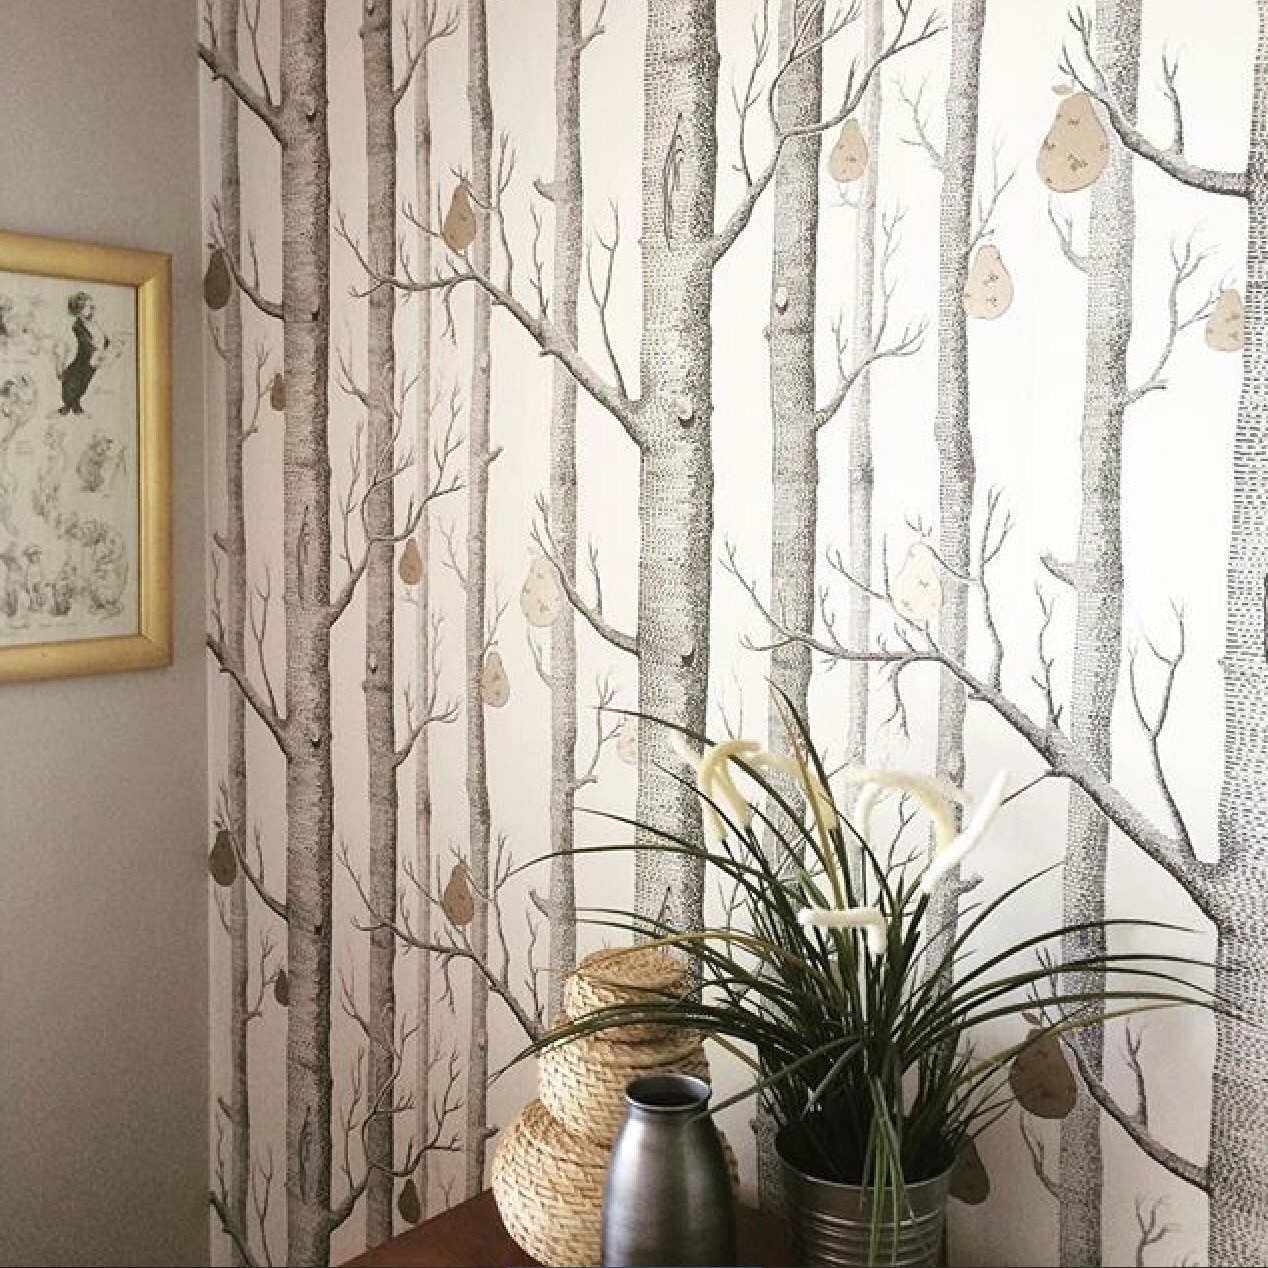 cole and son woods and pears wallpaper 955027 1268x1268